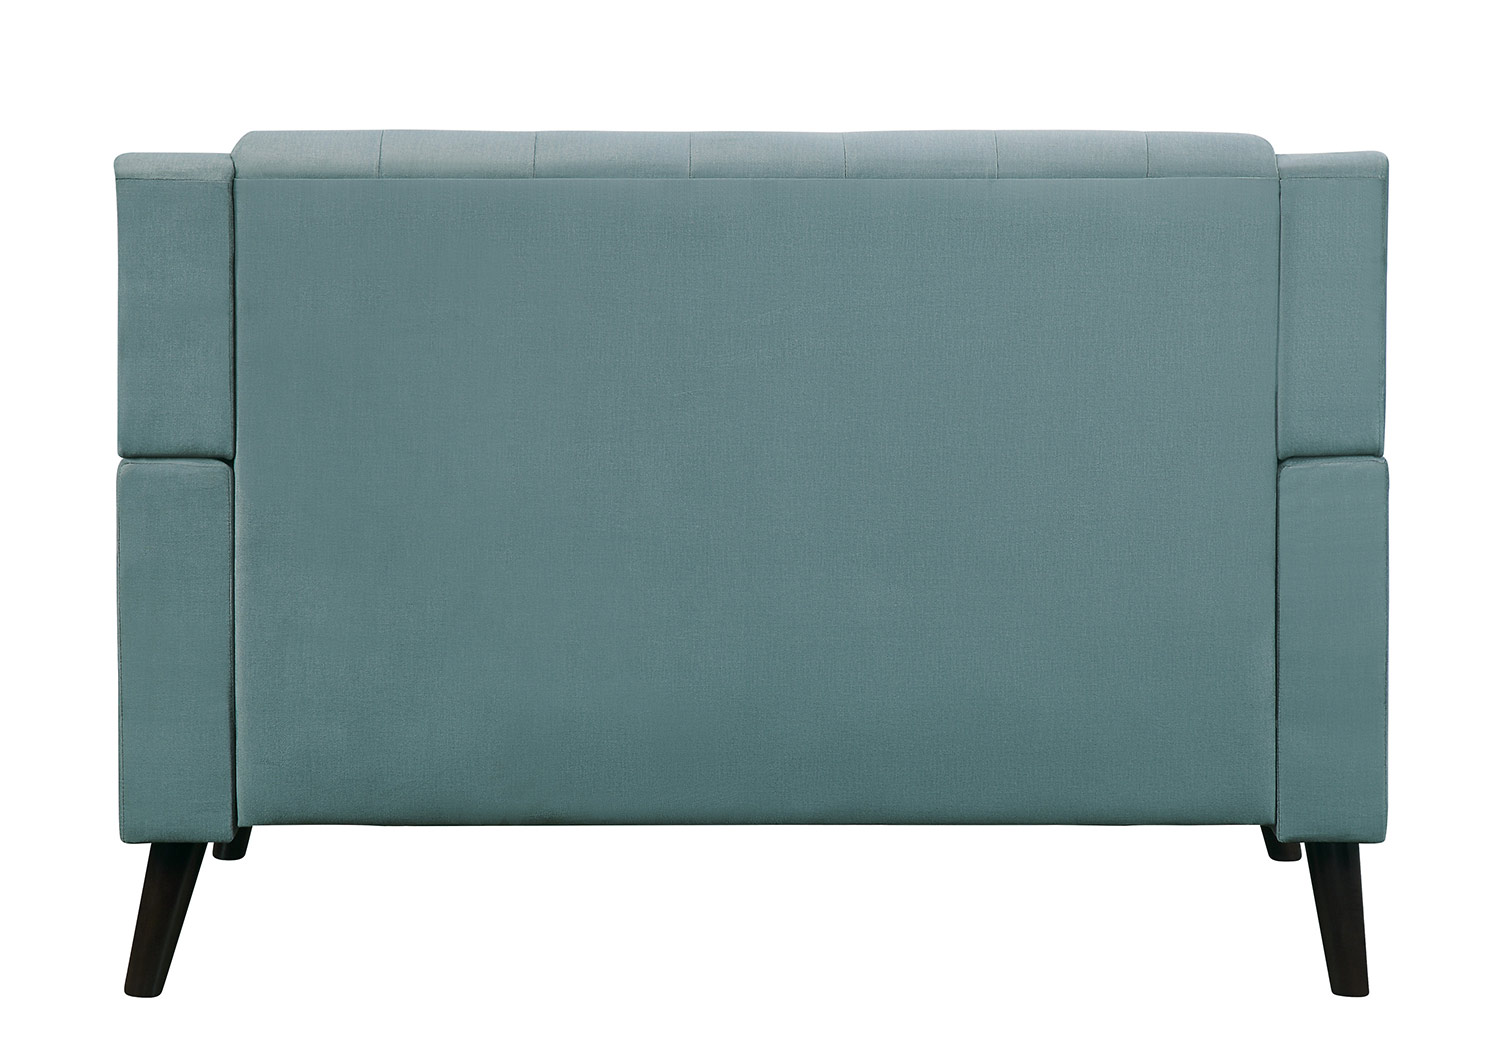 Homelegance Broadview Love Seat - Fog gray